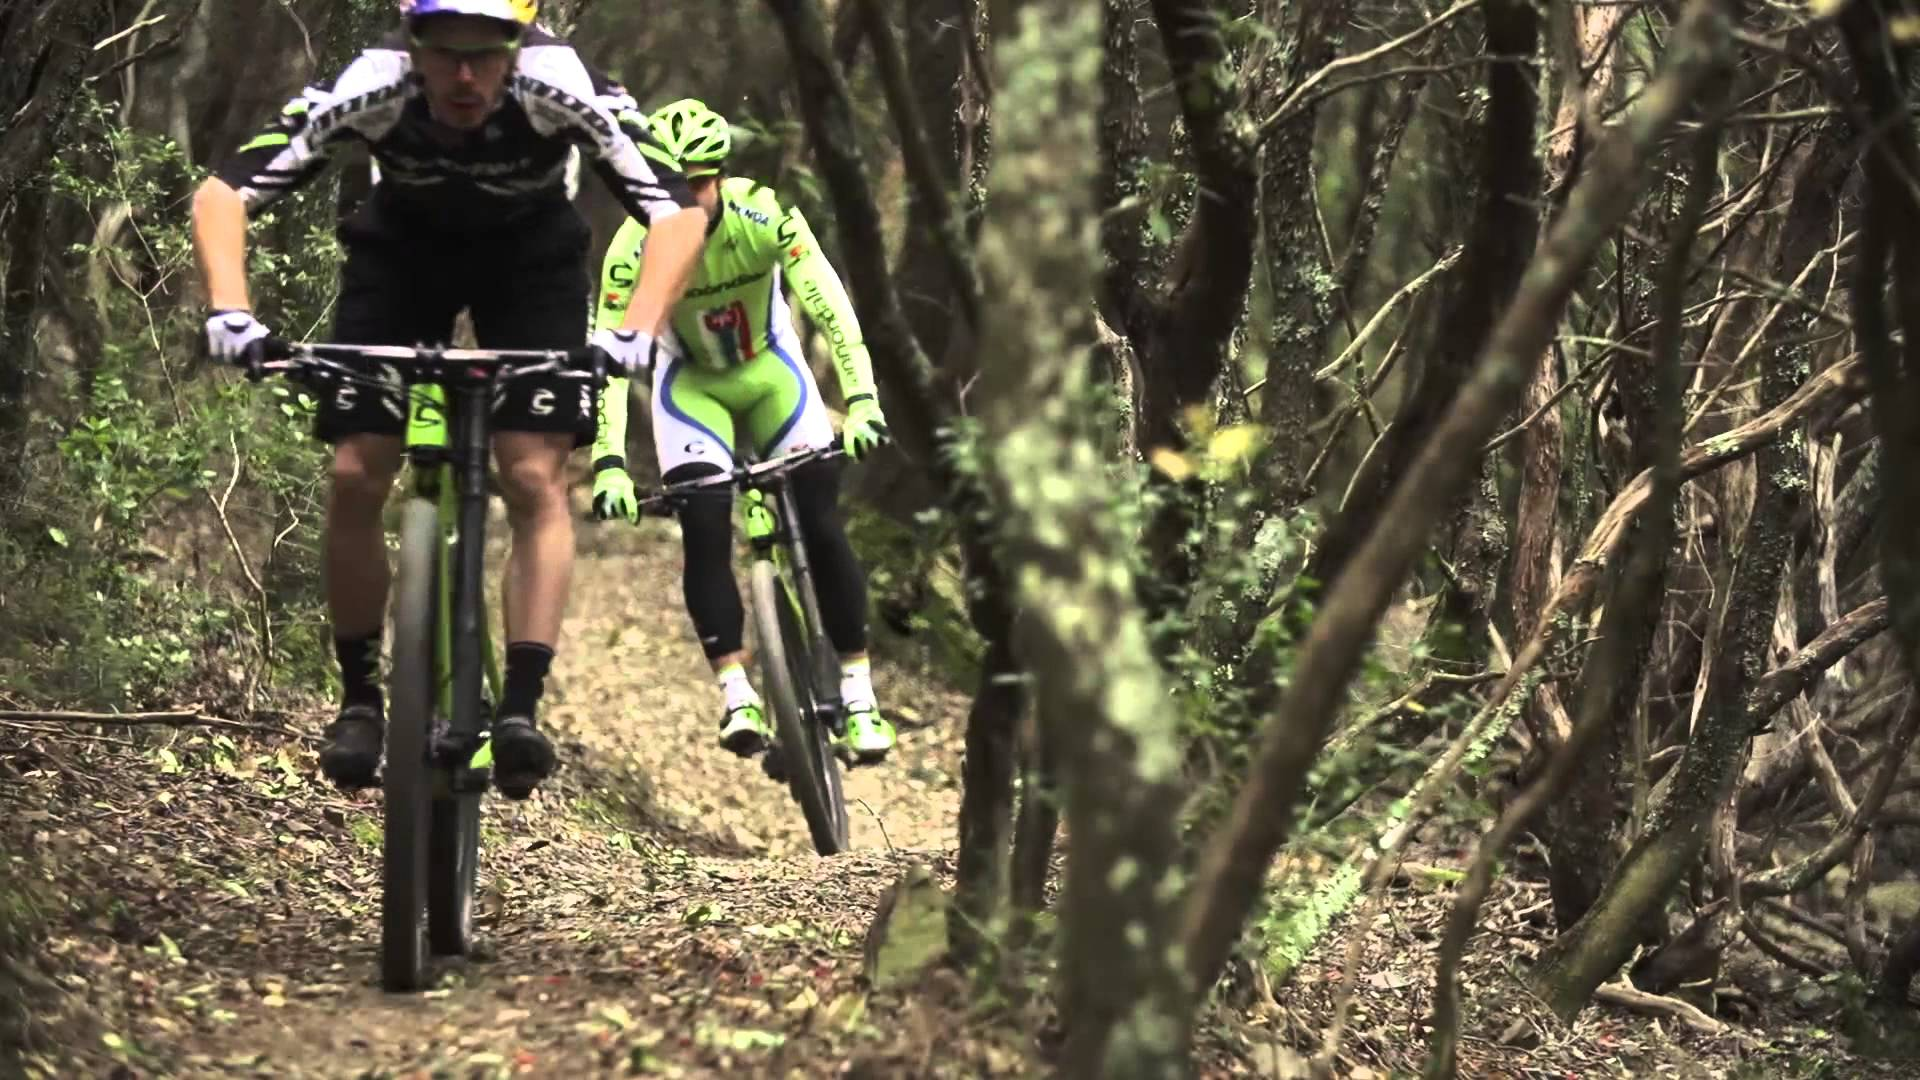 Peter Sagan Goes Mountain Biking